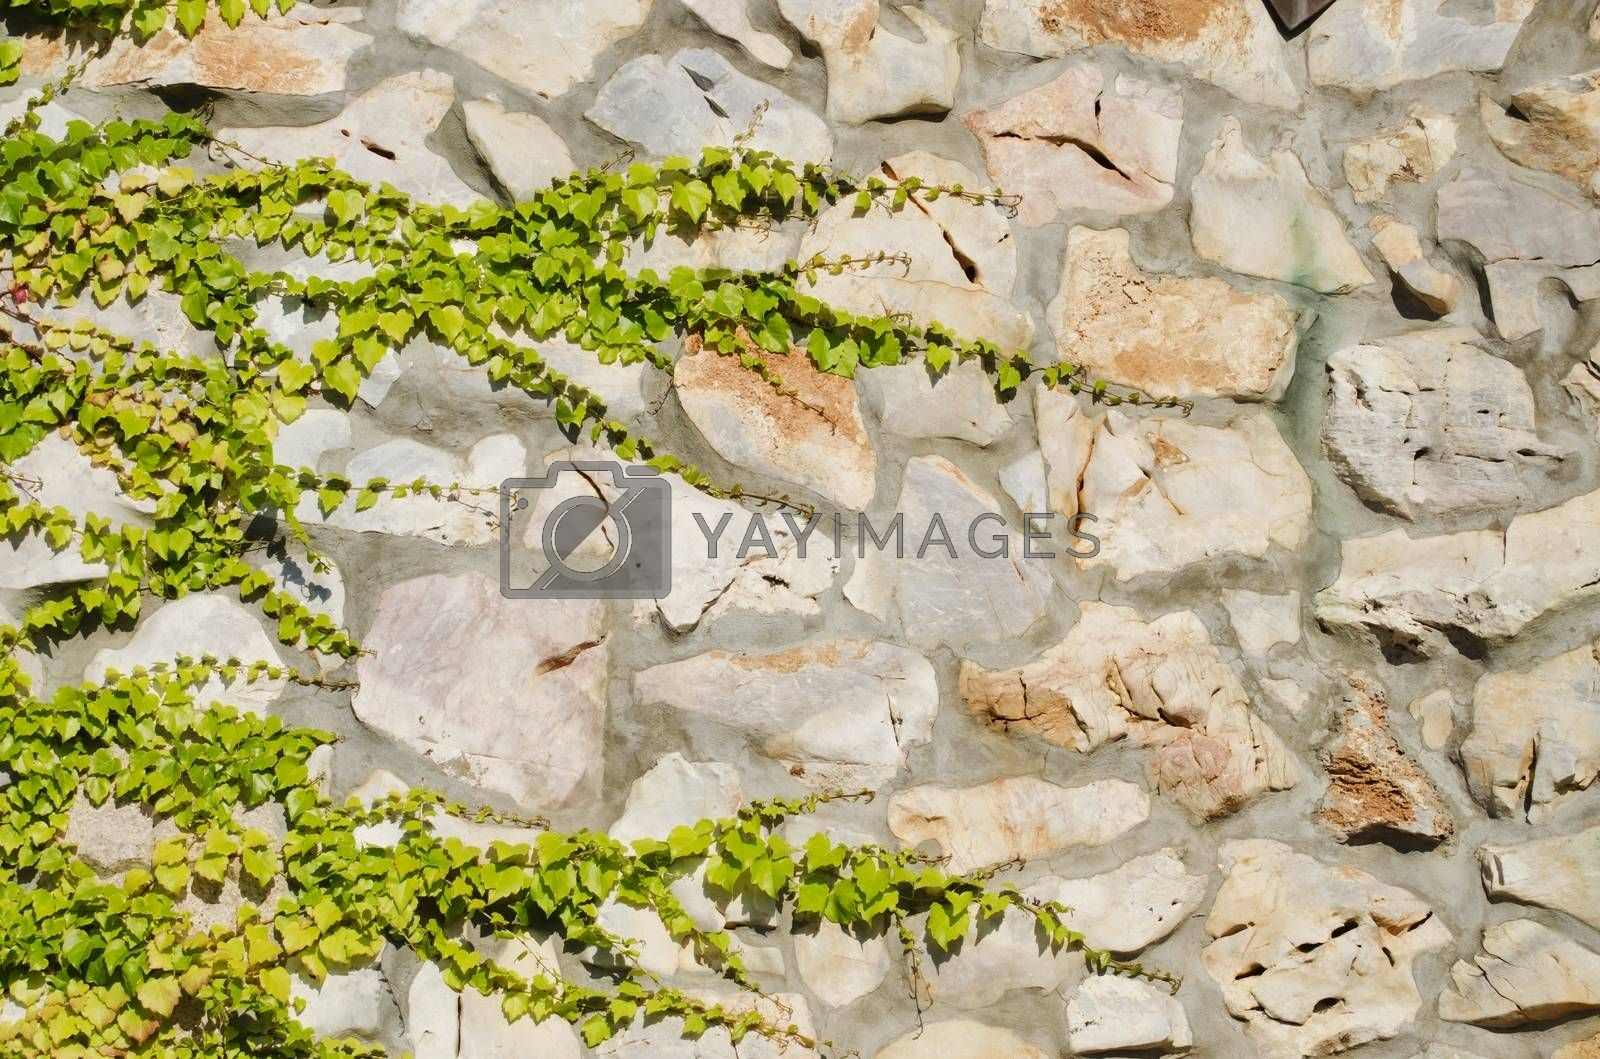 Photo of the Natural Stone Wall With Greenery